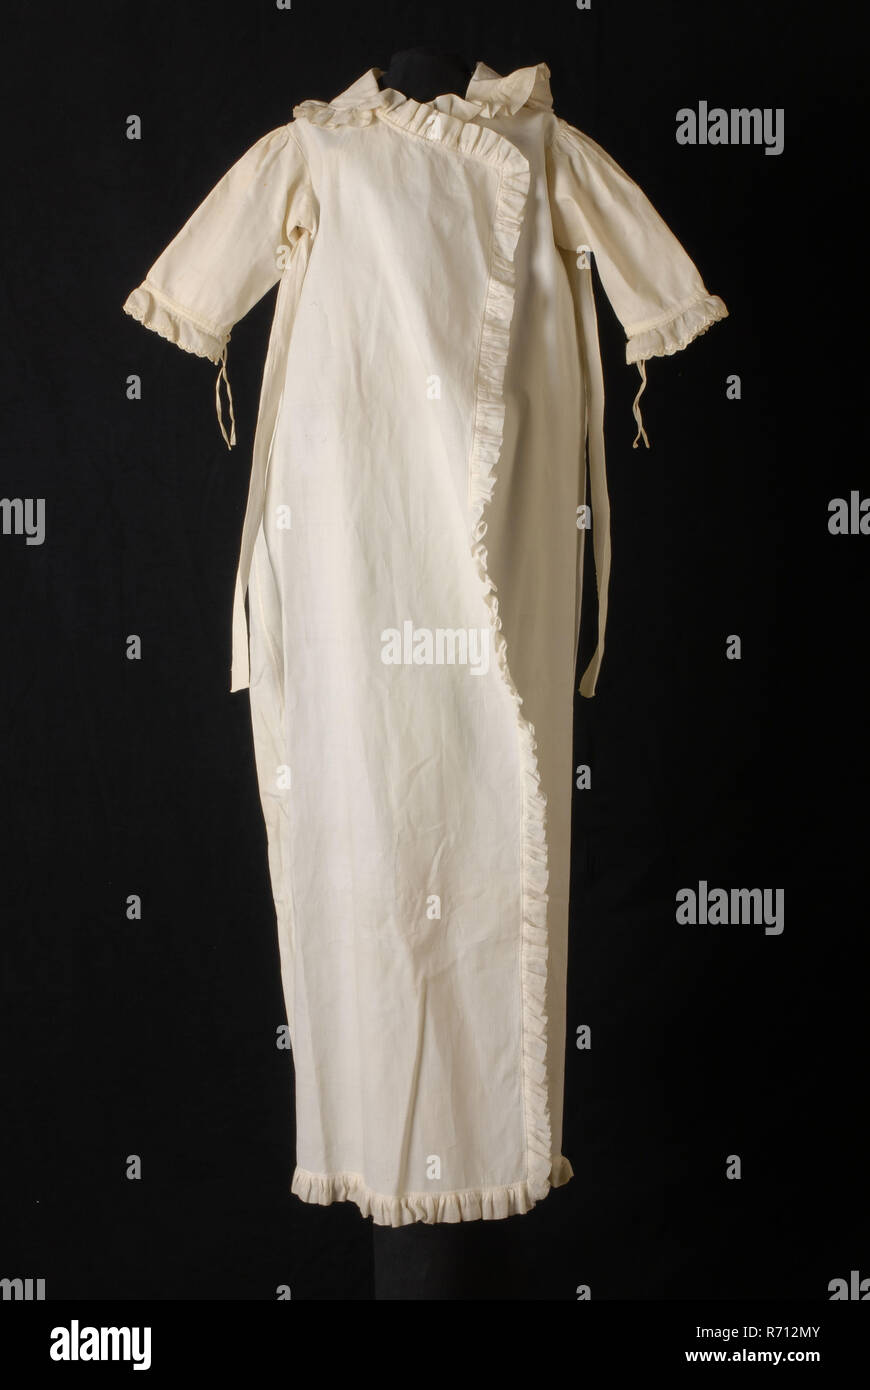 bffe872edd72 Long white baby coat of rib cotton, piqué, trimmed along all edges with  ruffles